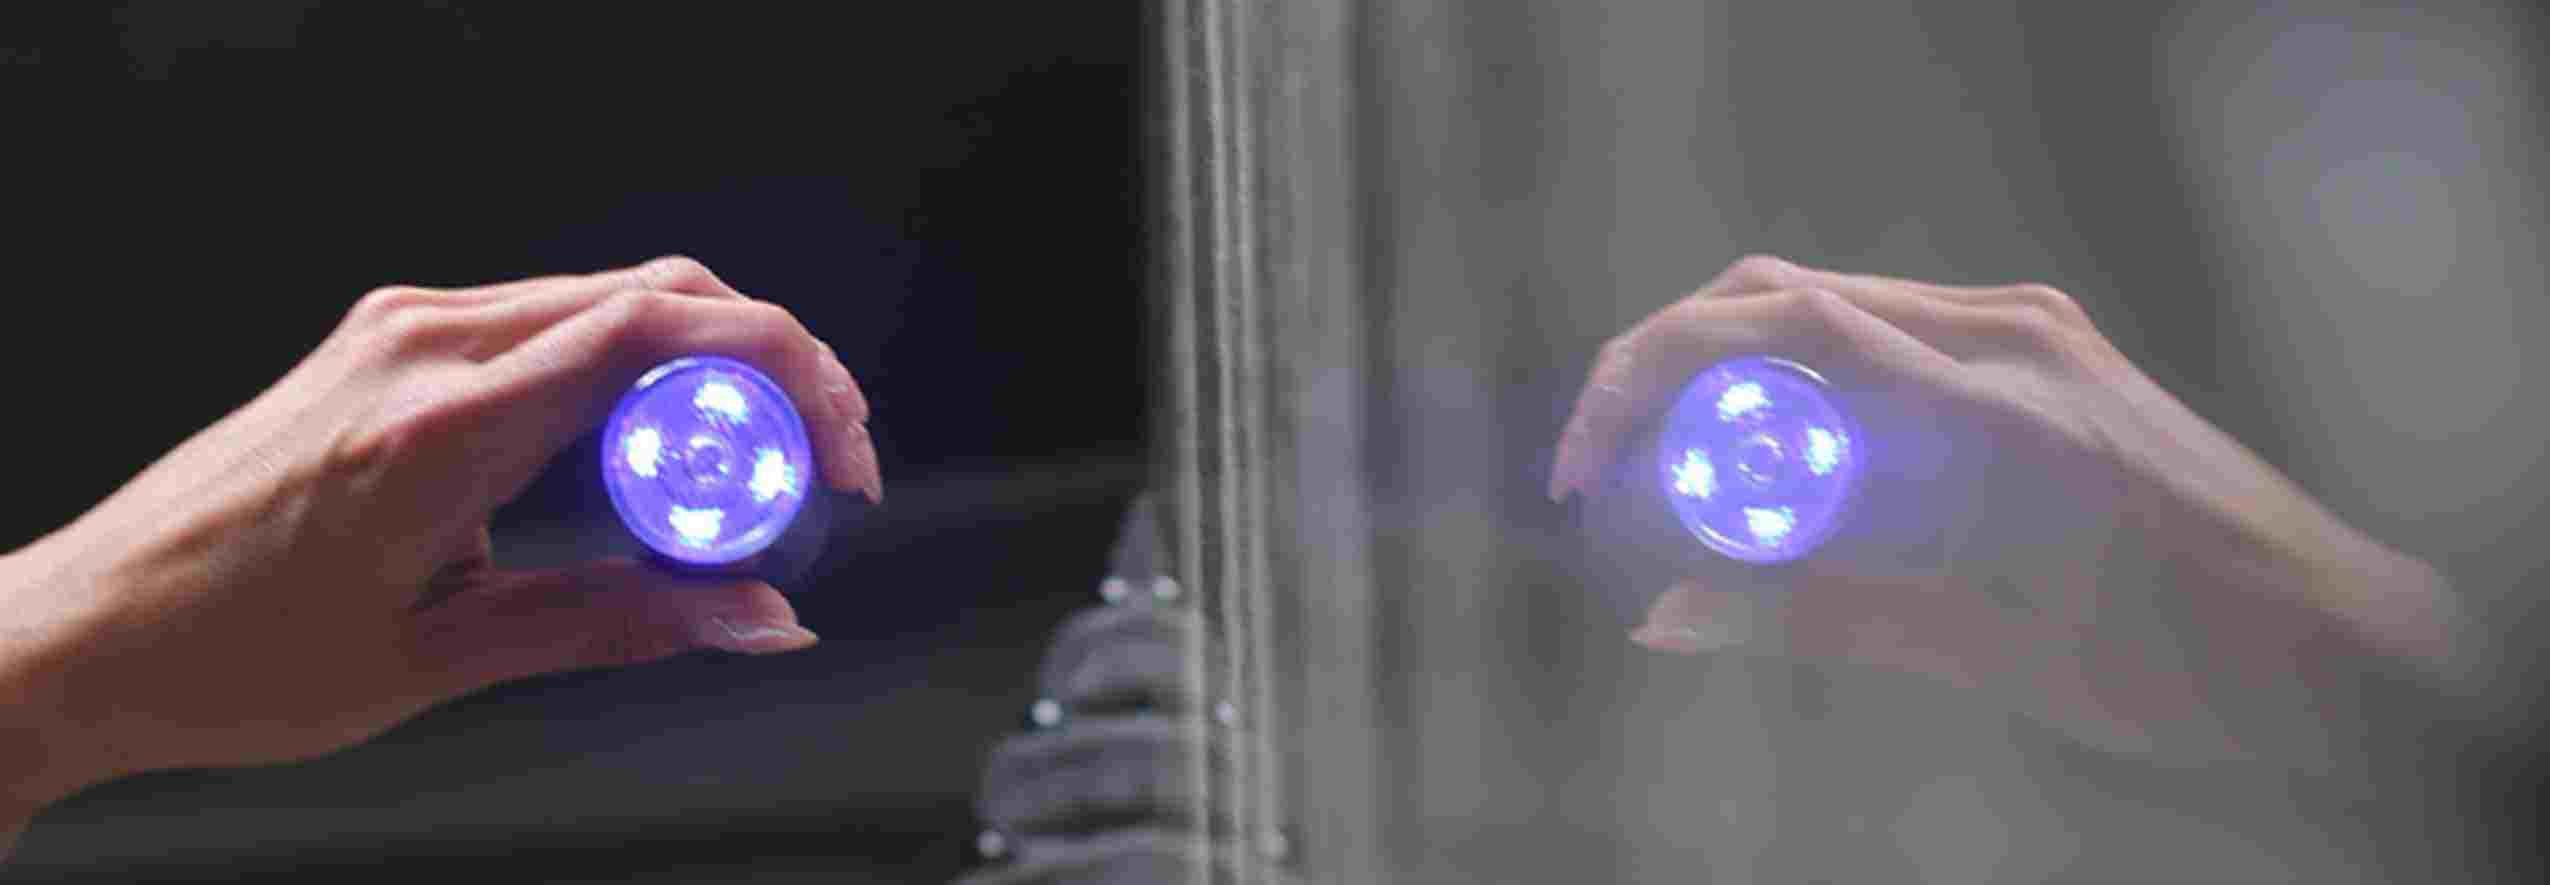 Laser in hand reflection